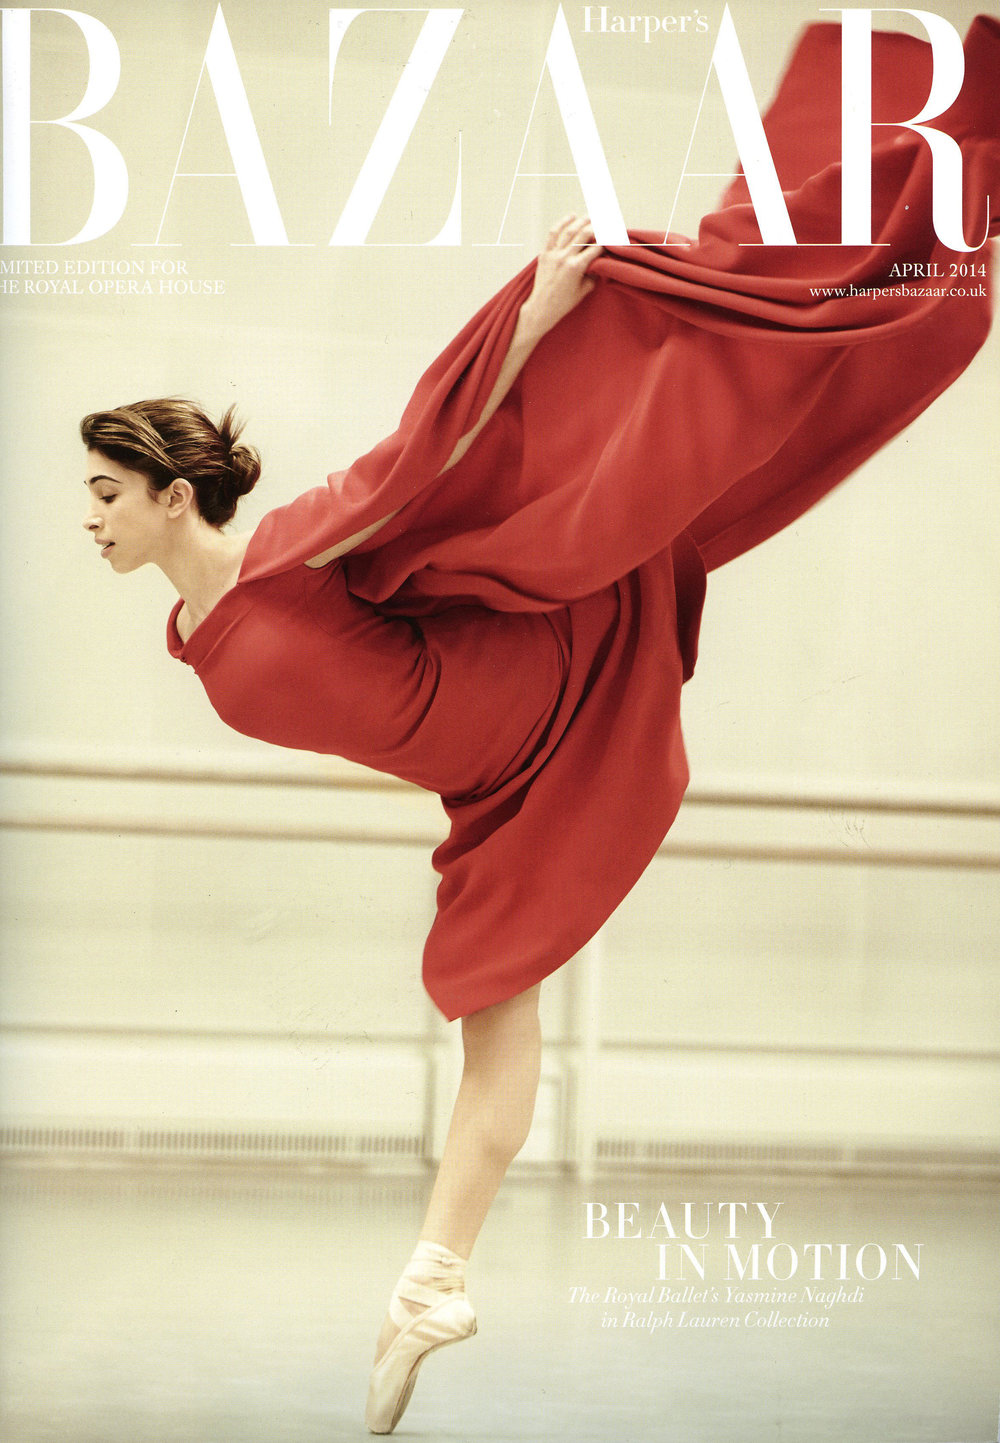 Harpers-uk-dance-cover copy.jpg